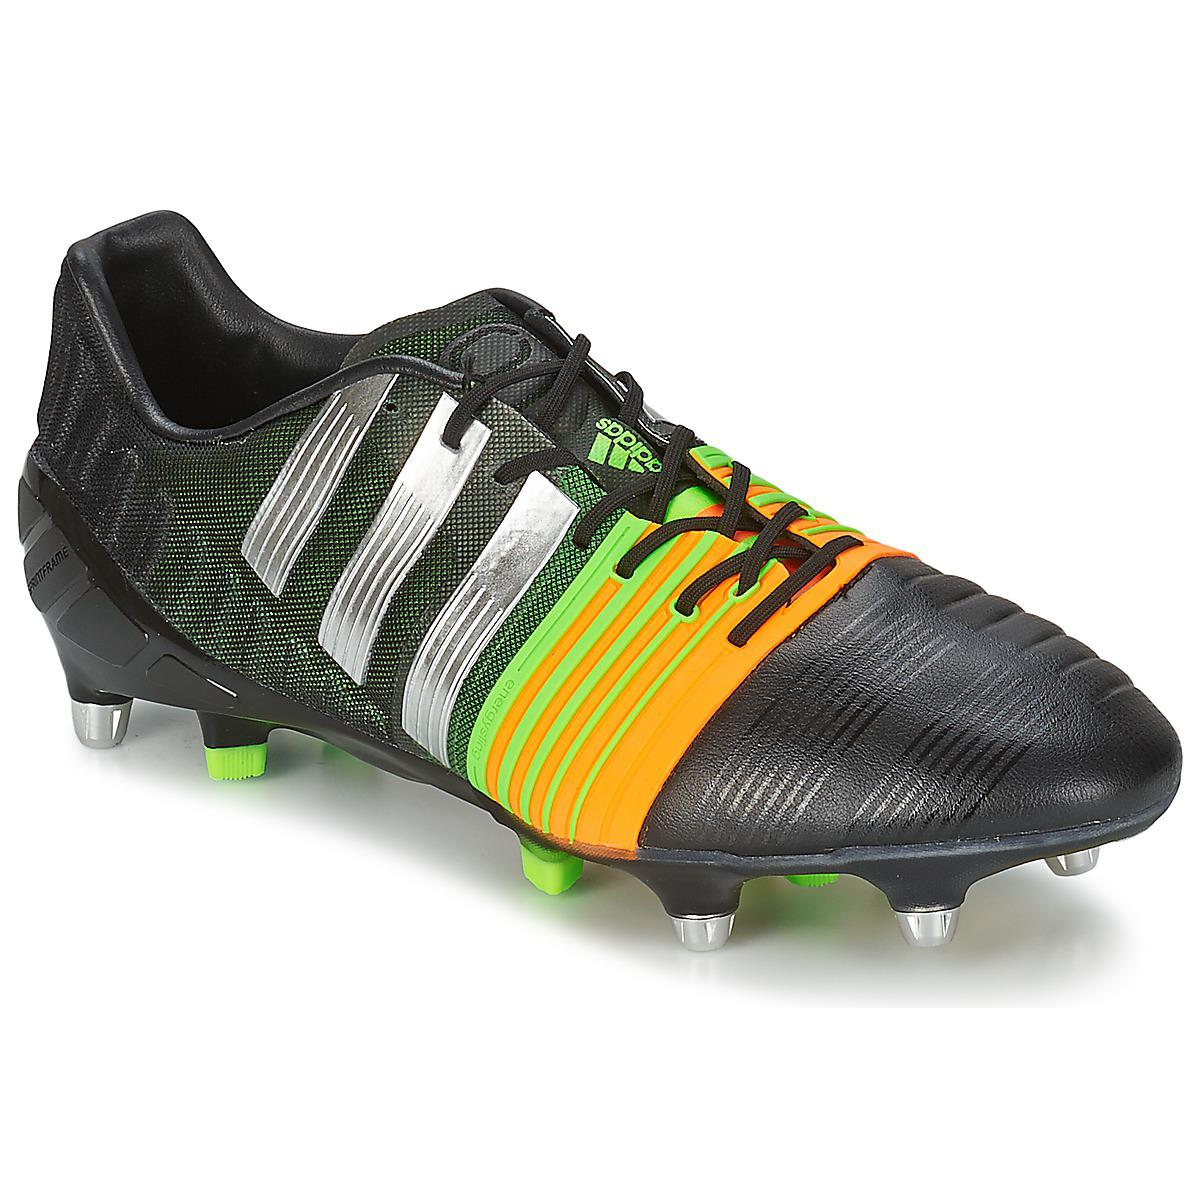 info for 317c6 f3ff6 Adidas Nitrocharge 1.0 Sg Men s Football Boots In Black in Black for ...